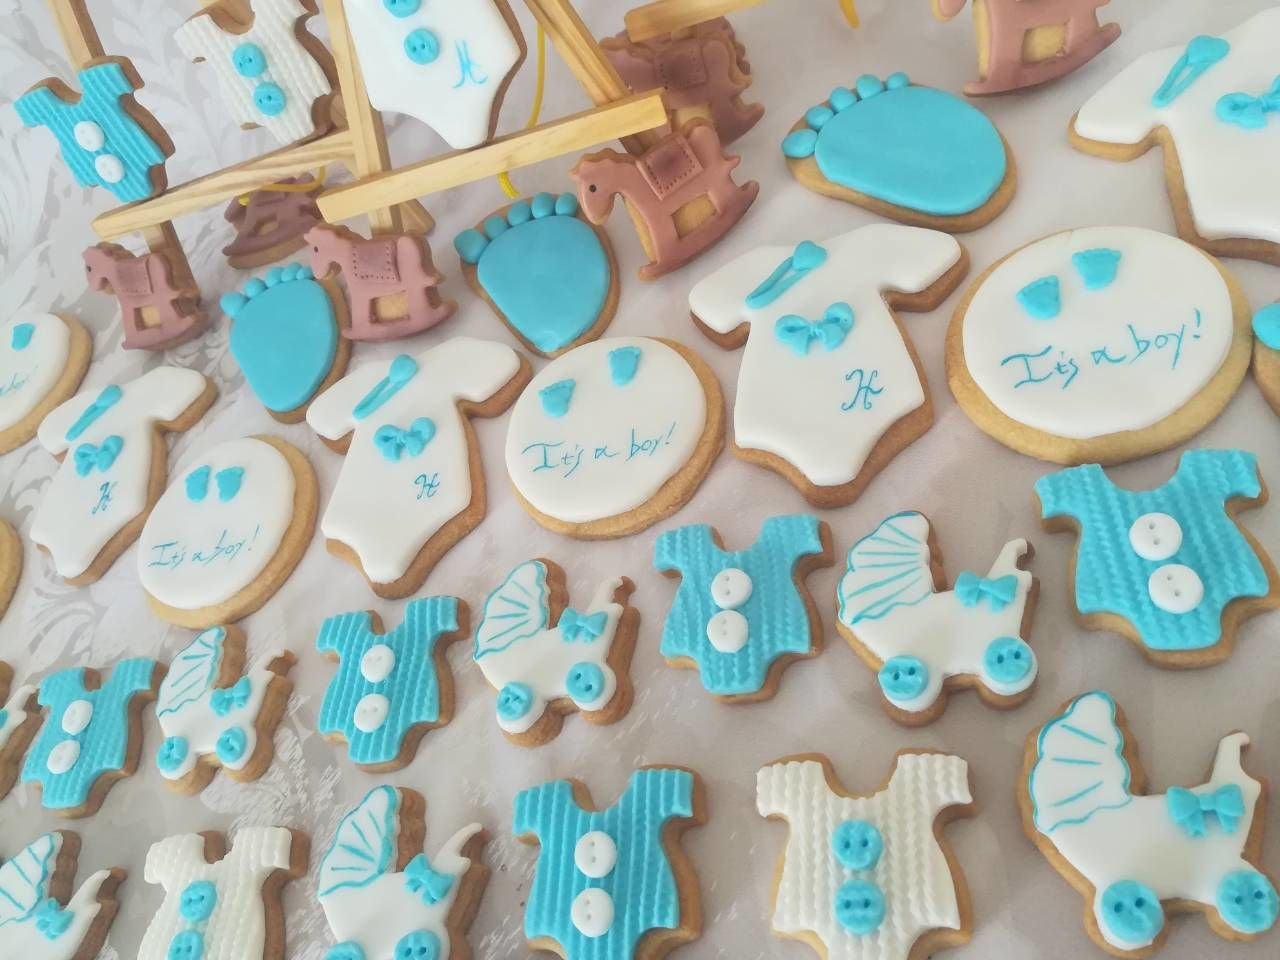 baby shower party it's a boy! αγόρι με cookies από ζαχαρόπαστα, ζαχαροπλαστείο κοντά μου καλαμάτα madamecharlotte.gr, birth theme cookies and partycakes 2d 3d confectionery patisserie kalamata